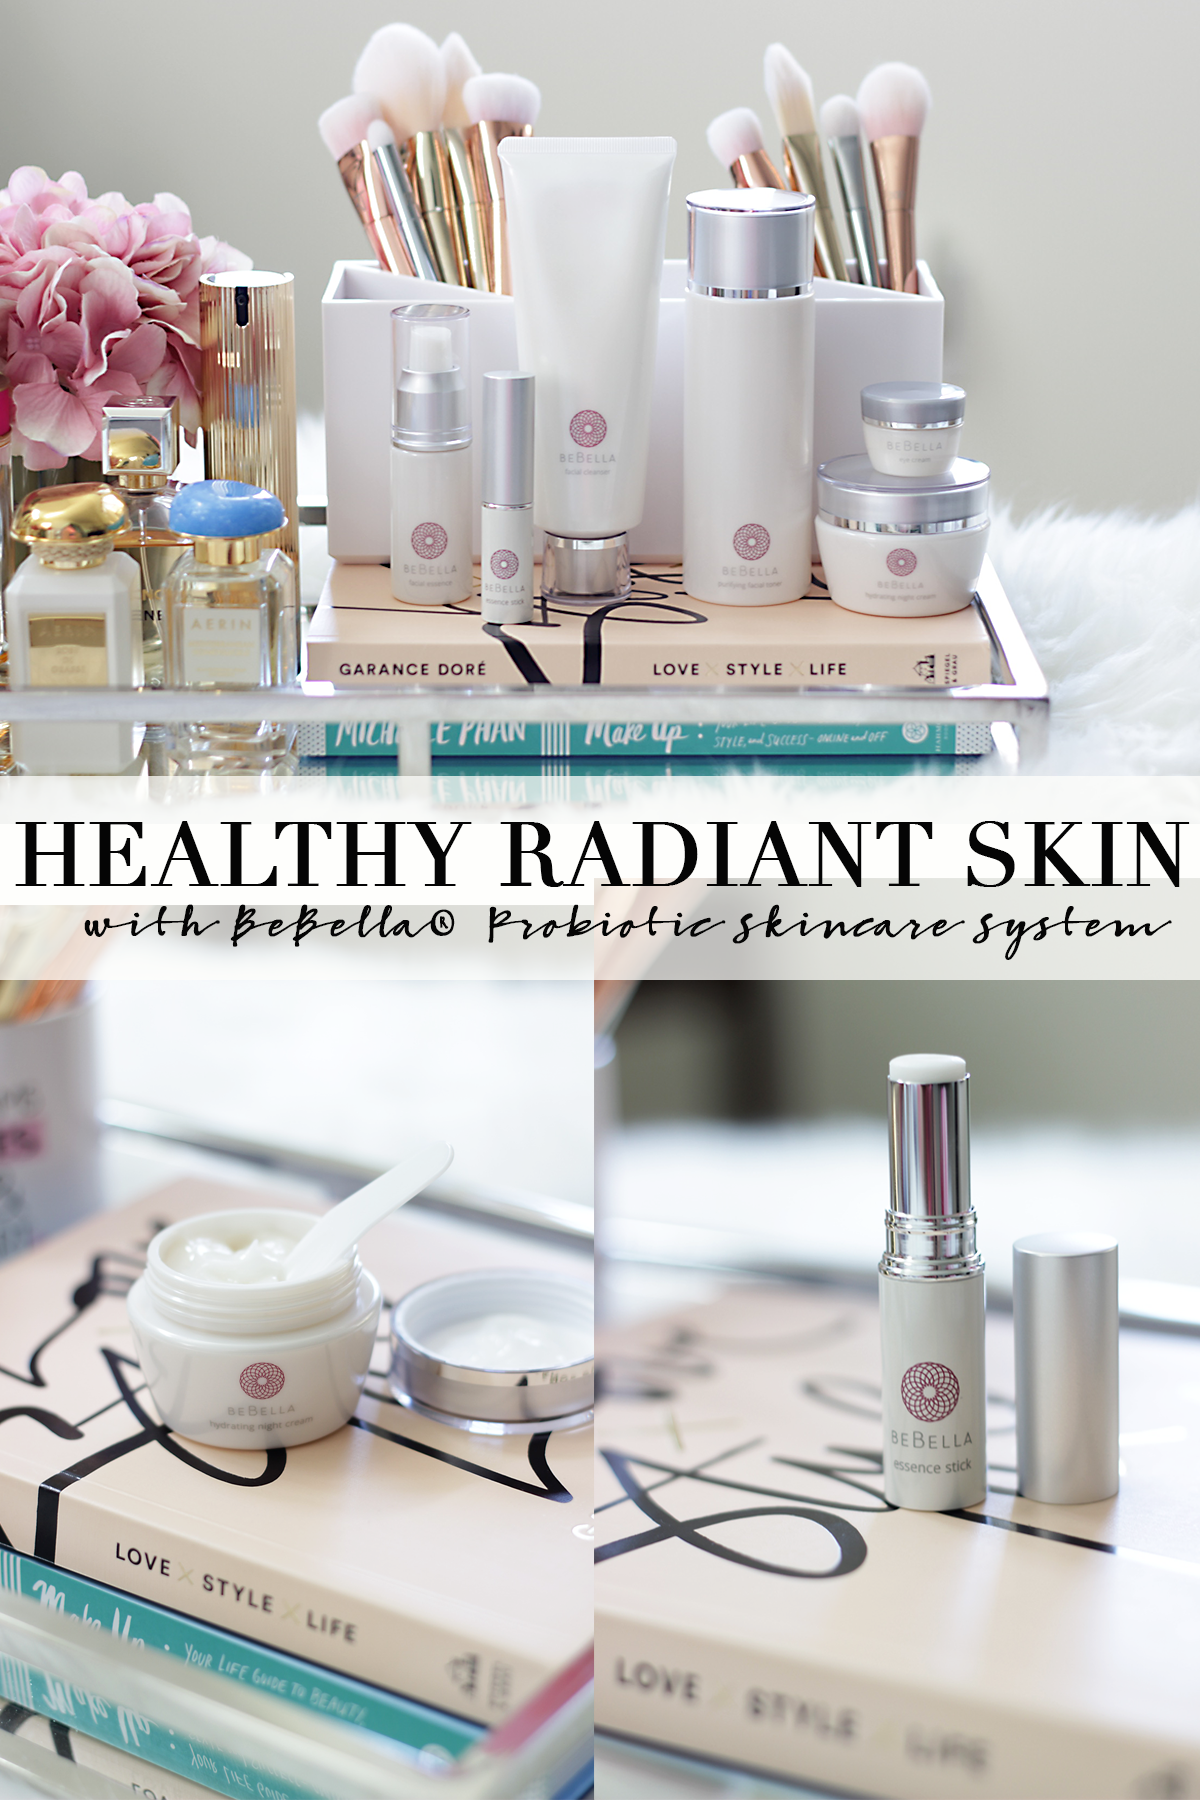 Probiotics in skincare? Yep, its a thing now and seriously it's what unicorns are made of. Find out more about what all probiotic technology in skincare can do today and how you should incorporate them now. - Makeup Life and Love- BeBe and Bella Skincare- BeBella- Probiotics